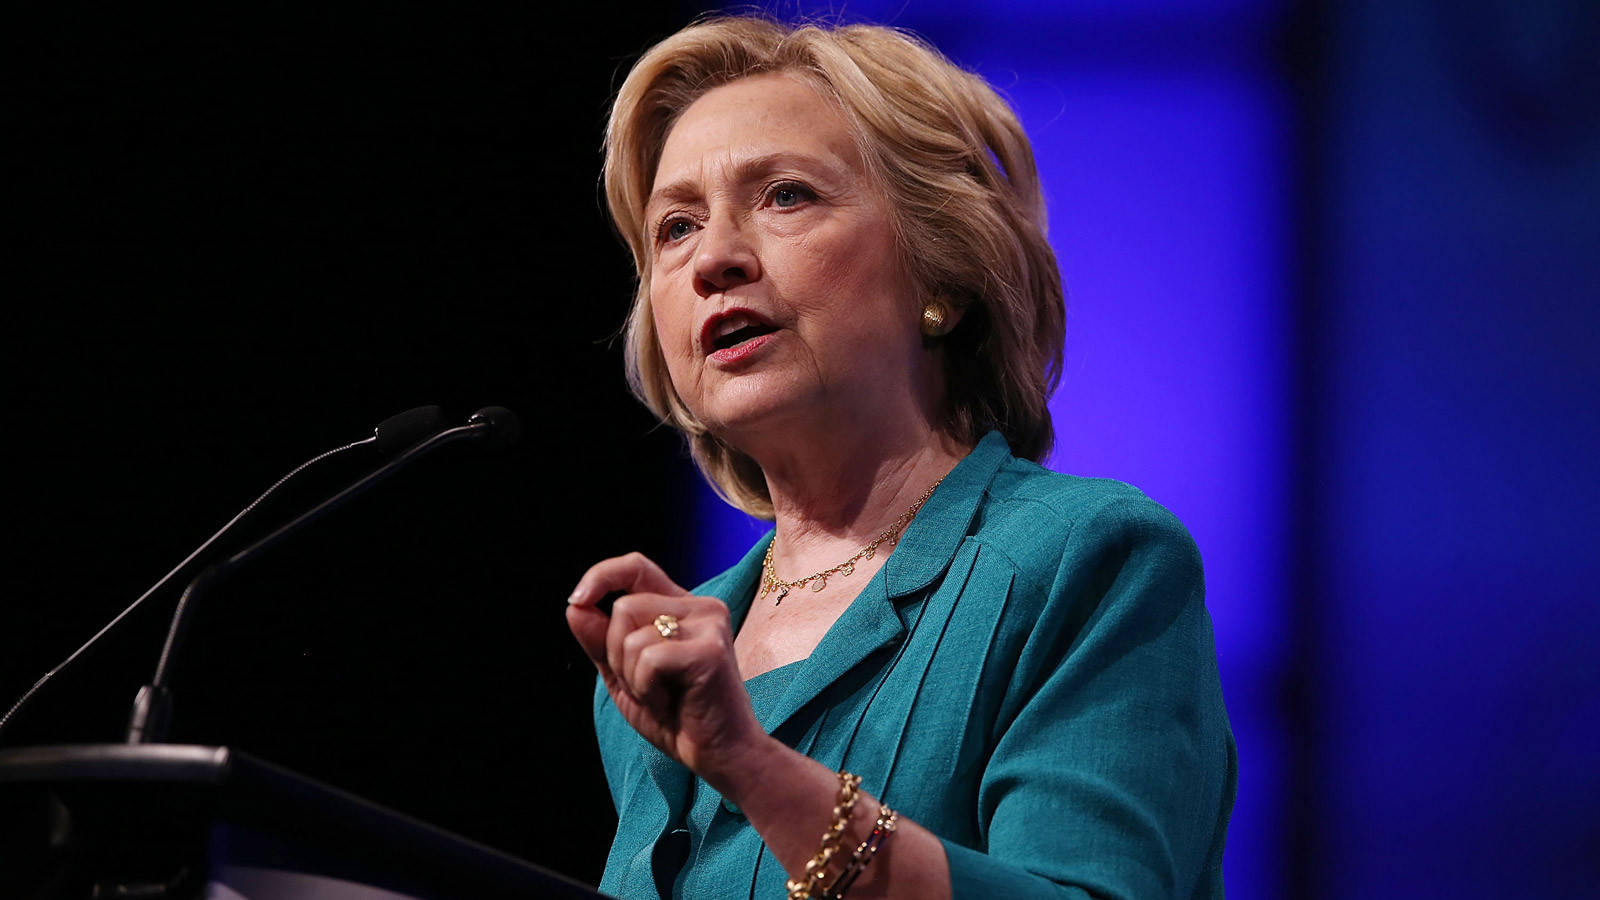 Democratic Presidential hopeful and former Secretary of State Hillary Clinton speaks during the Presidential Candidates Plenary at the National Urban League conference in the Fort Lauderdale Convention Center on July 31, 2015. (credit: Joe Raedle/Getty Images)